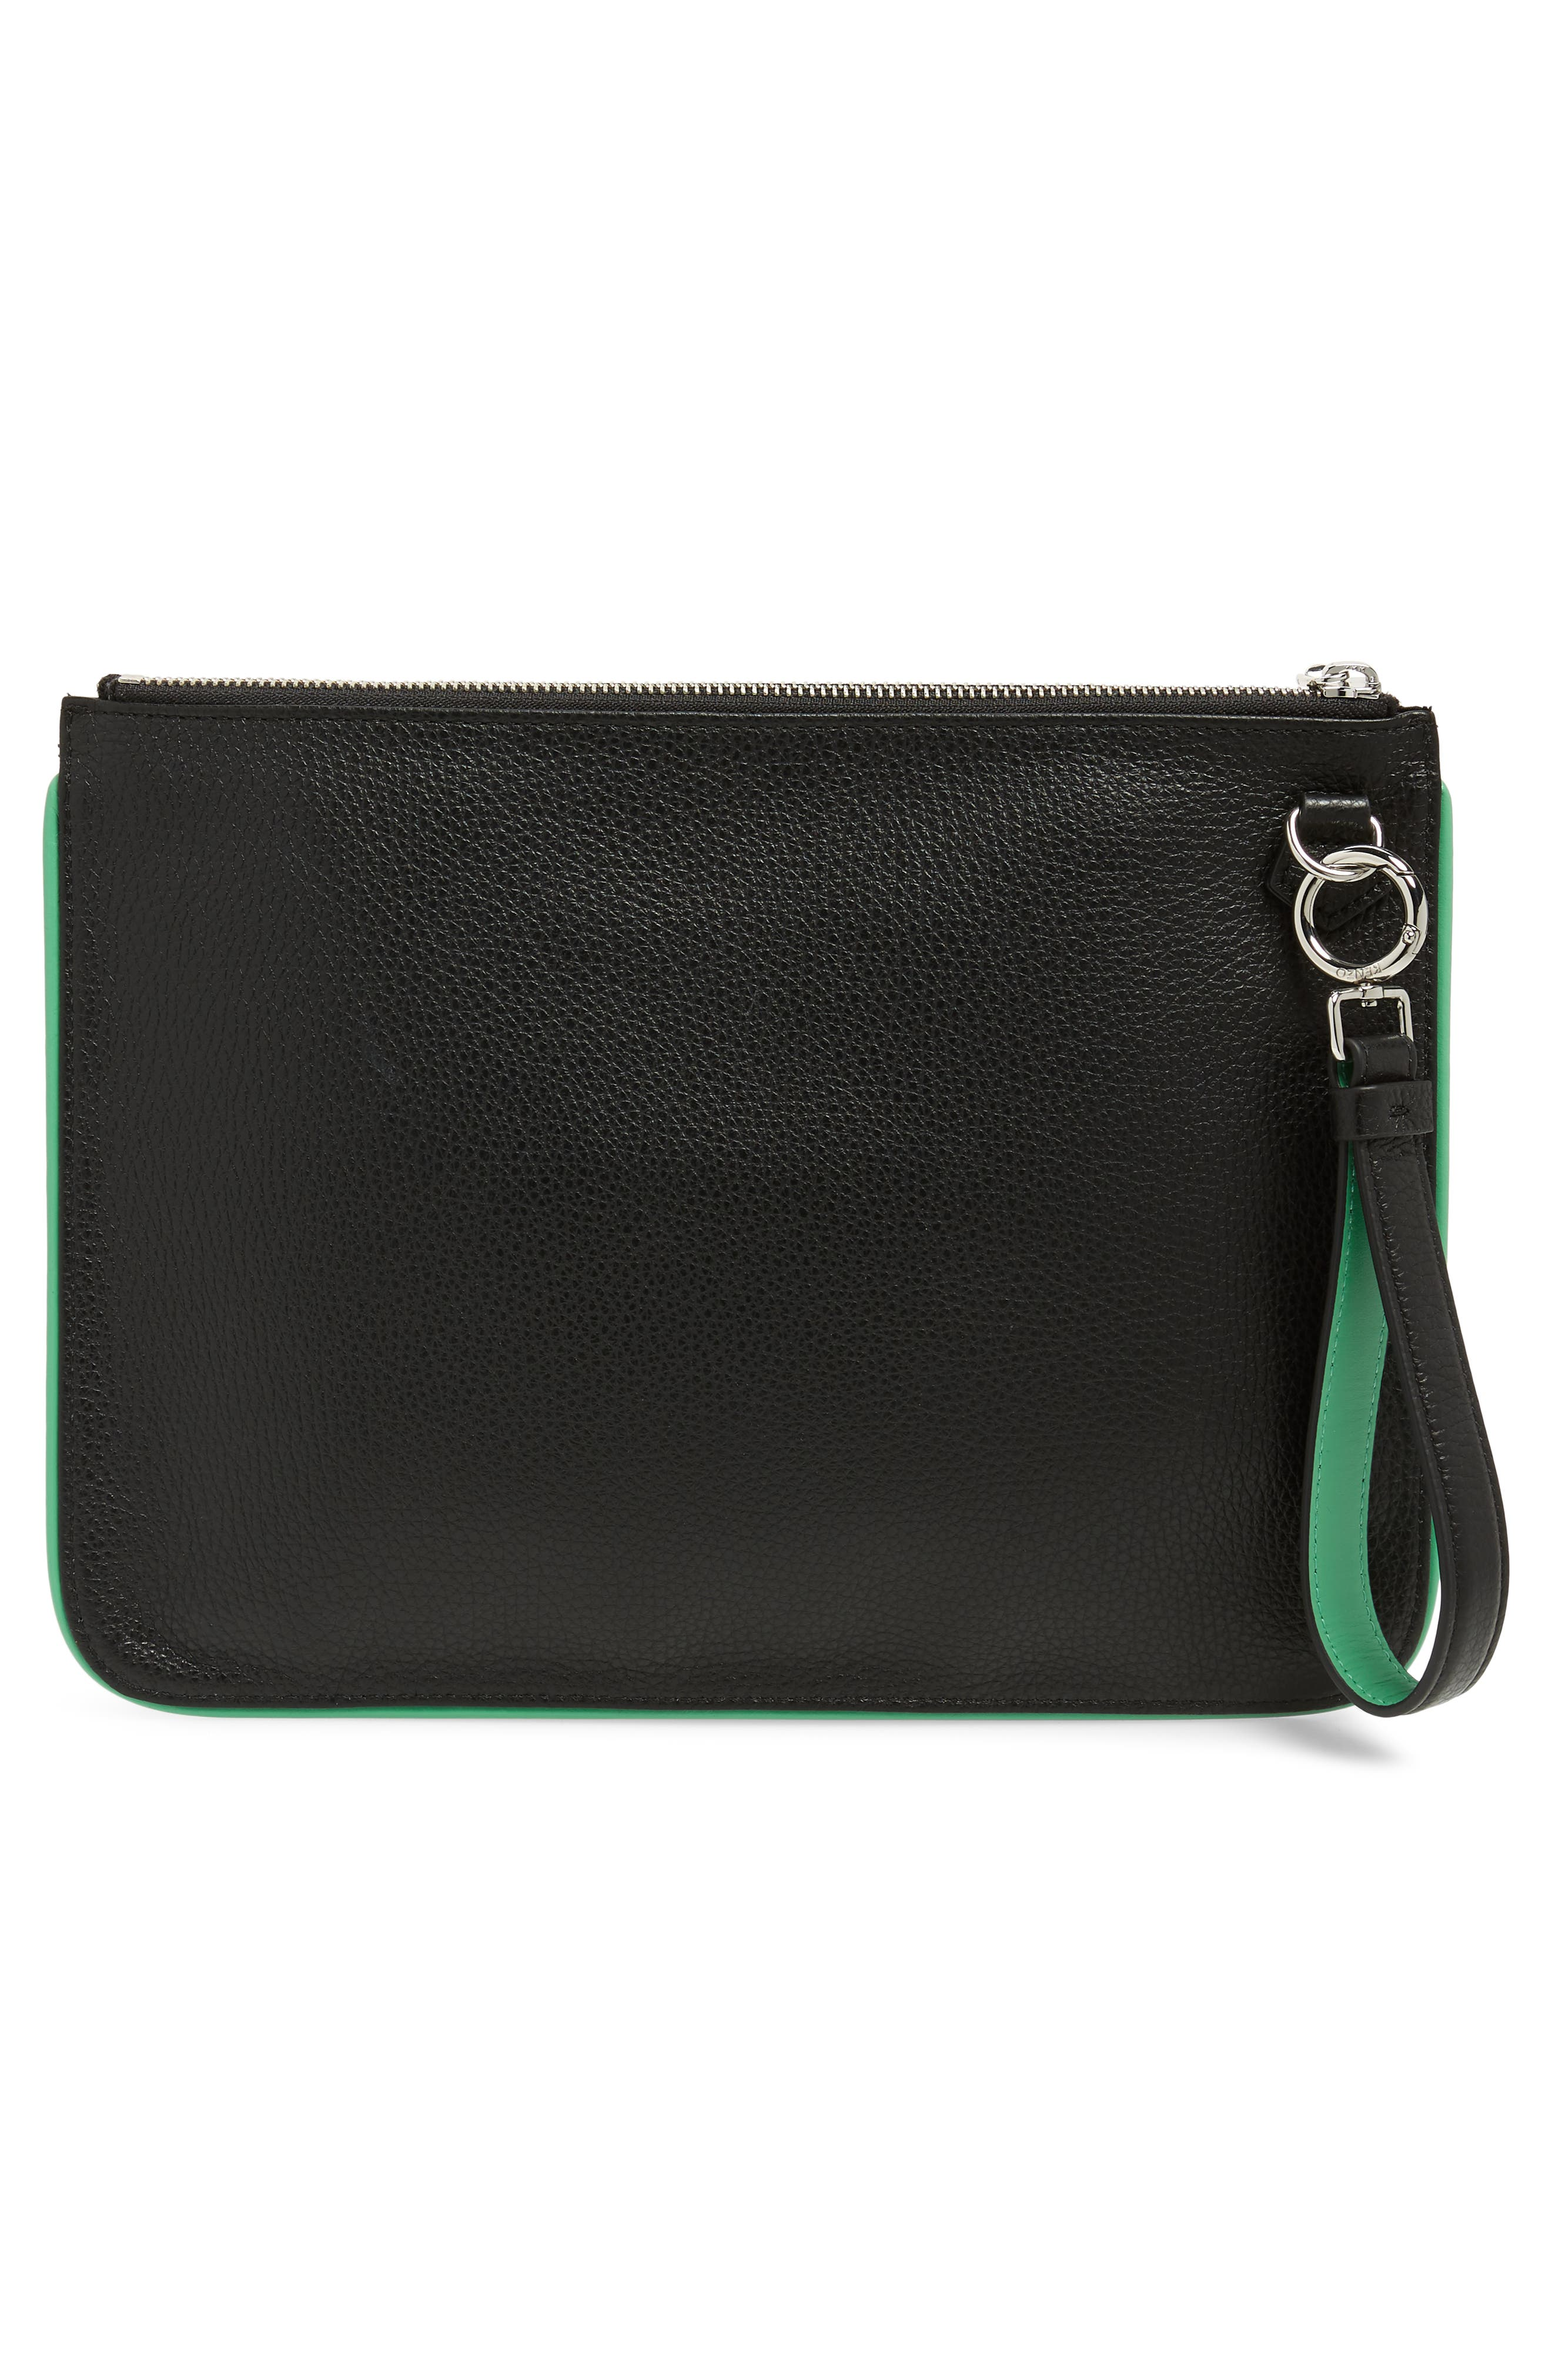 Leaping Tiger Leather A4 Pouch,                             Alternate thumbnail 3, color,                             BLACK